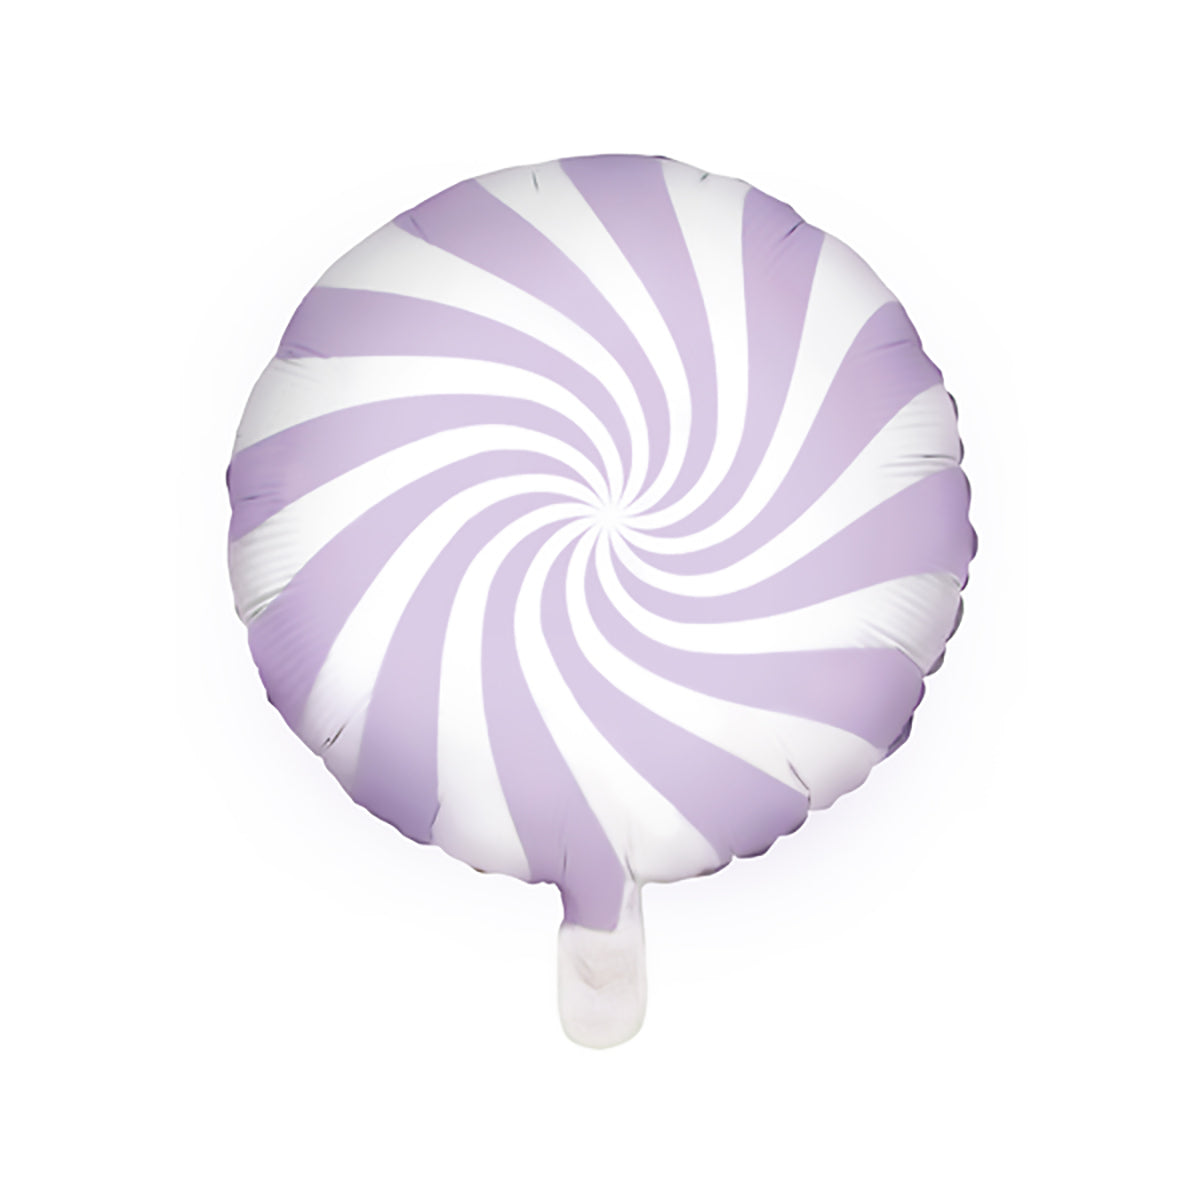 Purple Swirly Lollipop Foil Balloon 18"